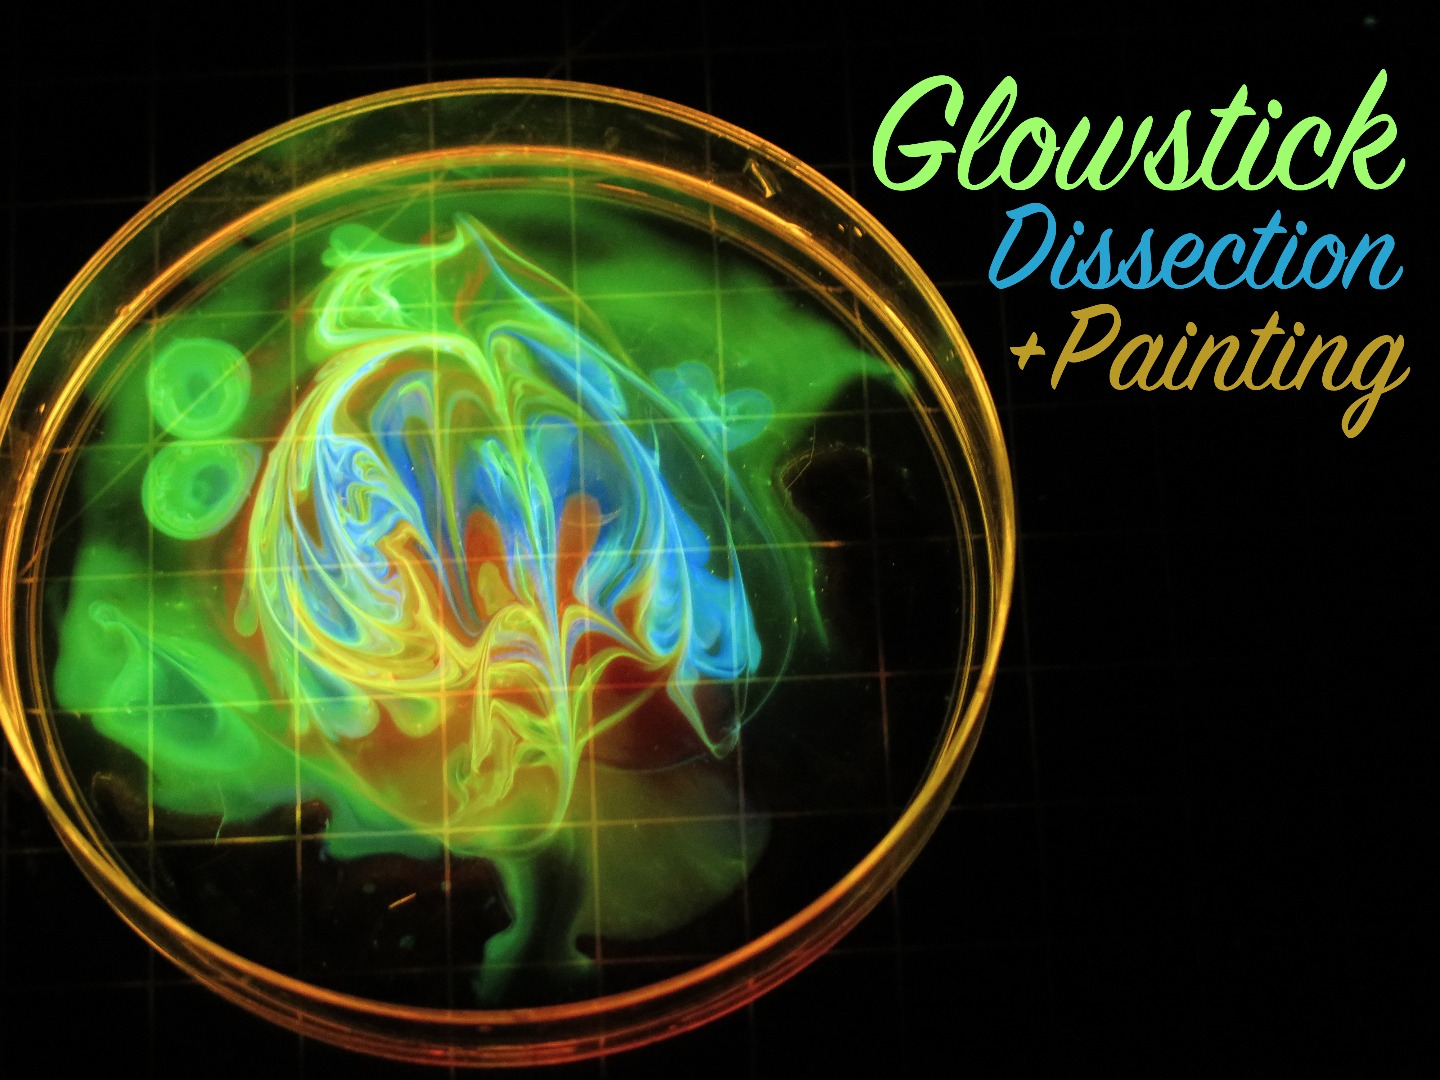 Picture of Glowstick Dissection and Painting